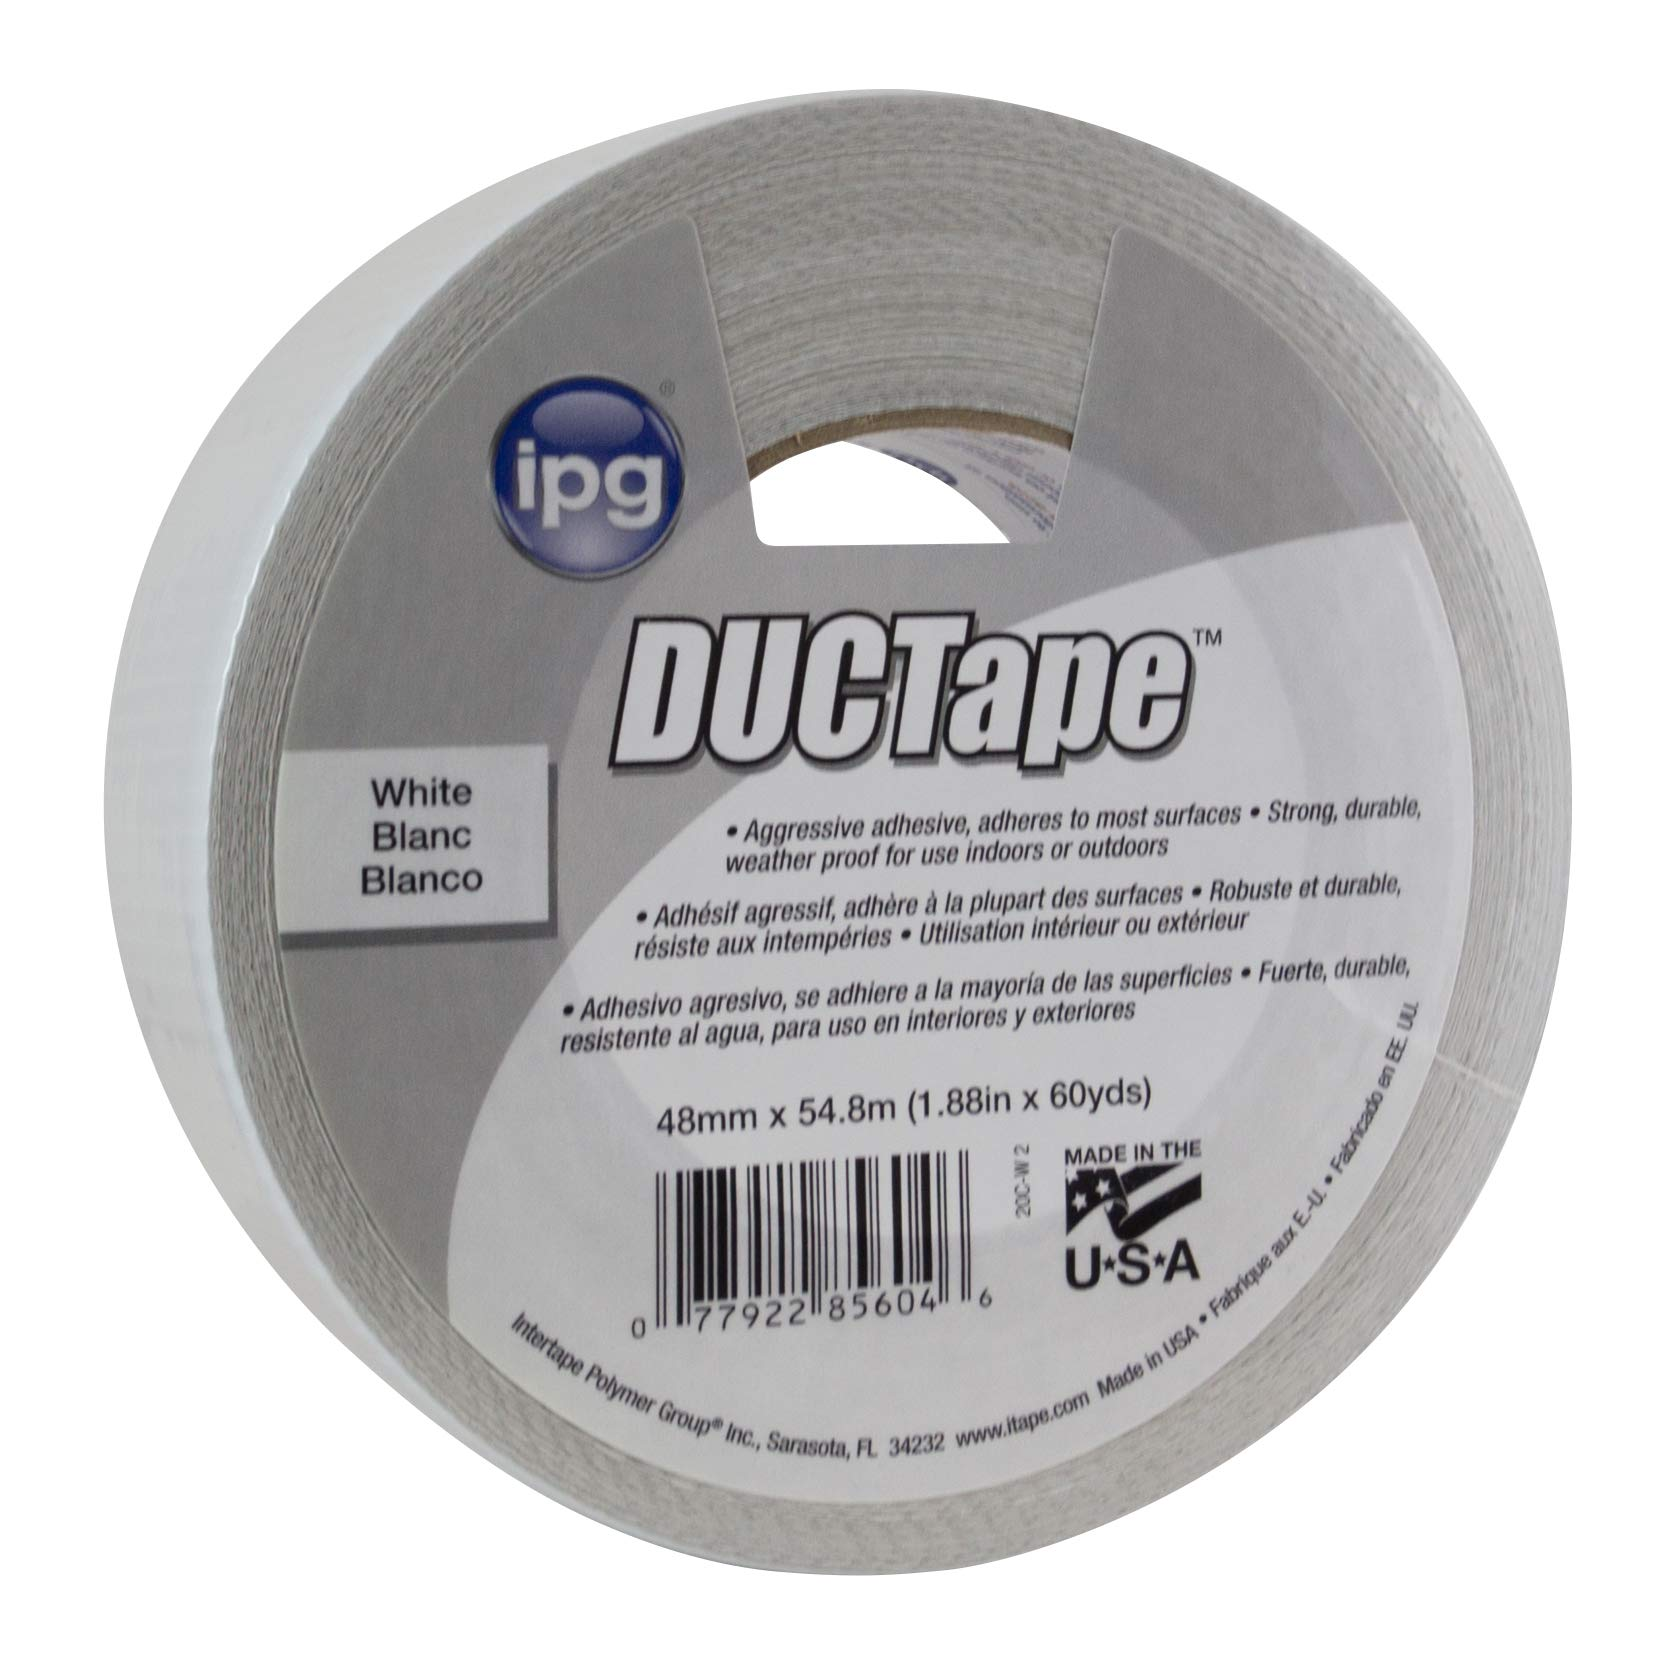 IPG AC20 9 Mil JobSite Utility DUCTape 1.88'' x 60 yd, White